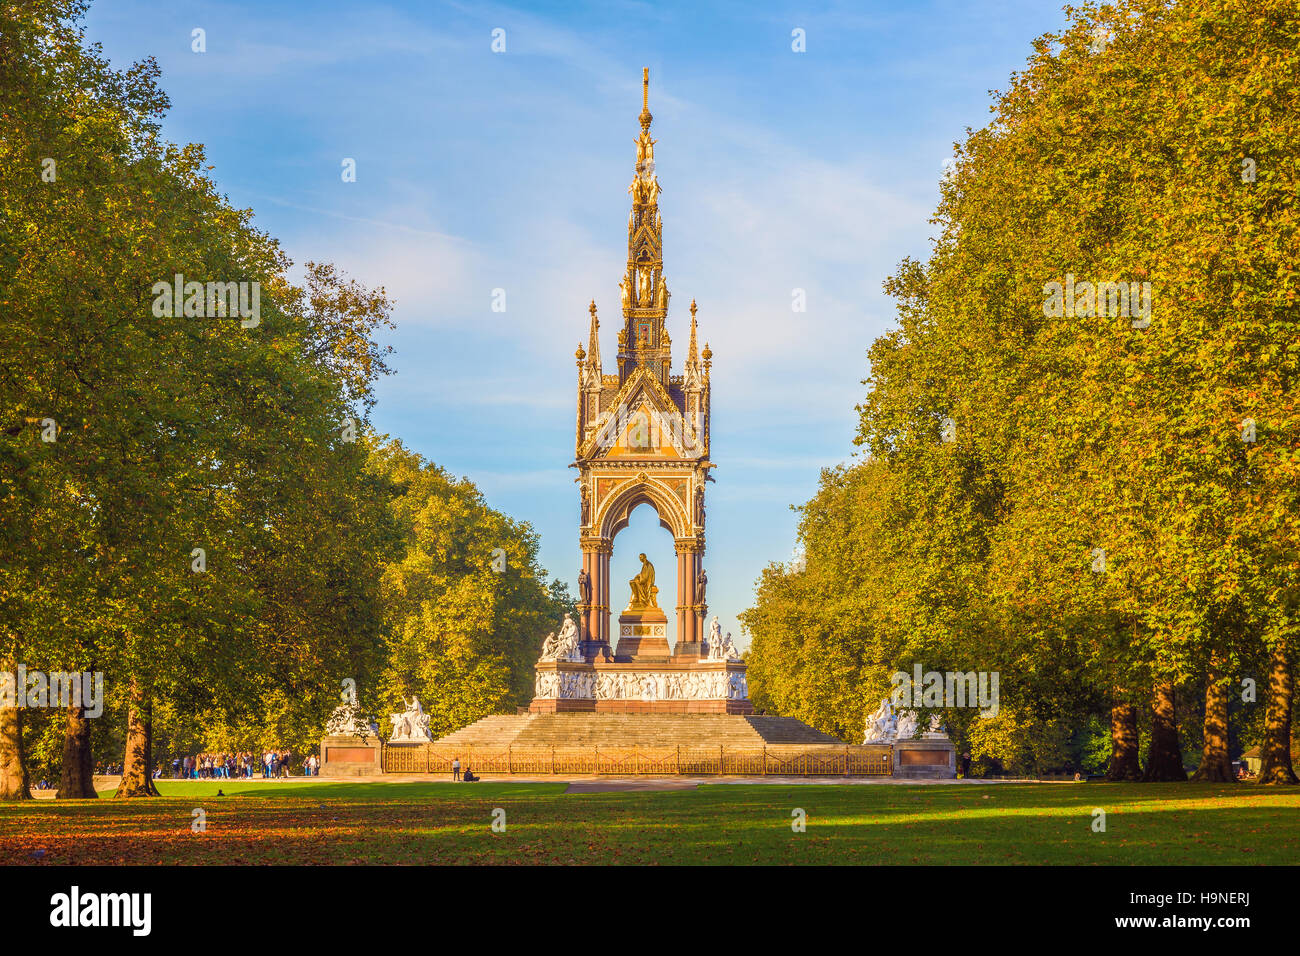 Saison d'automne à l'Albert Memorial à Londres Photo Stock